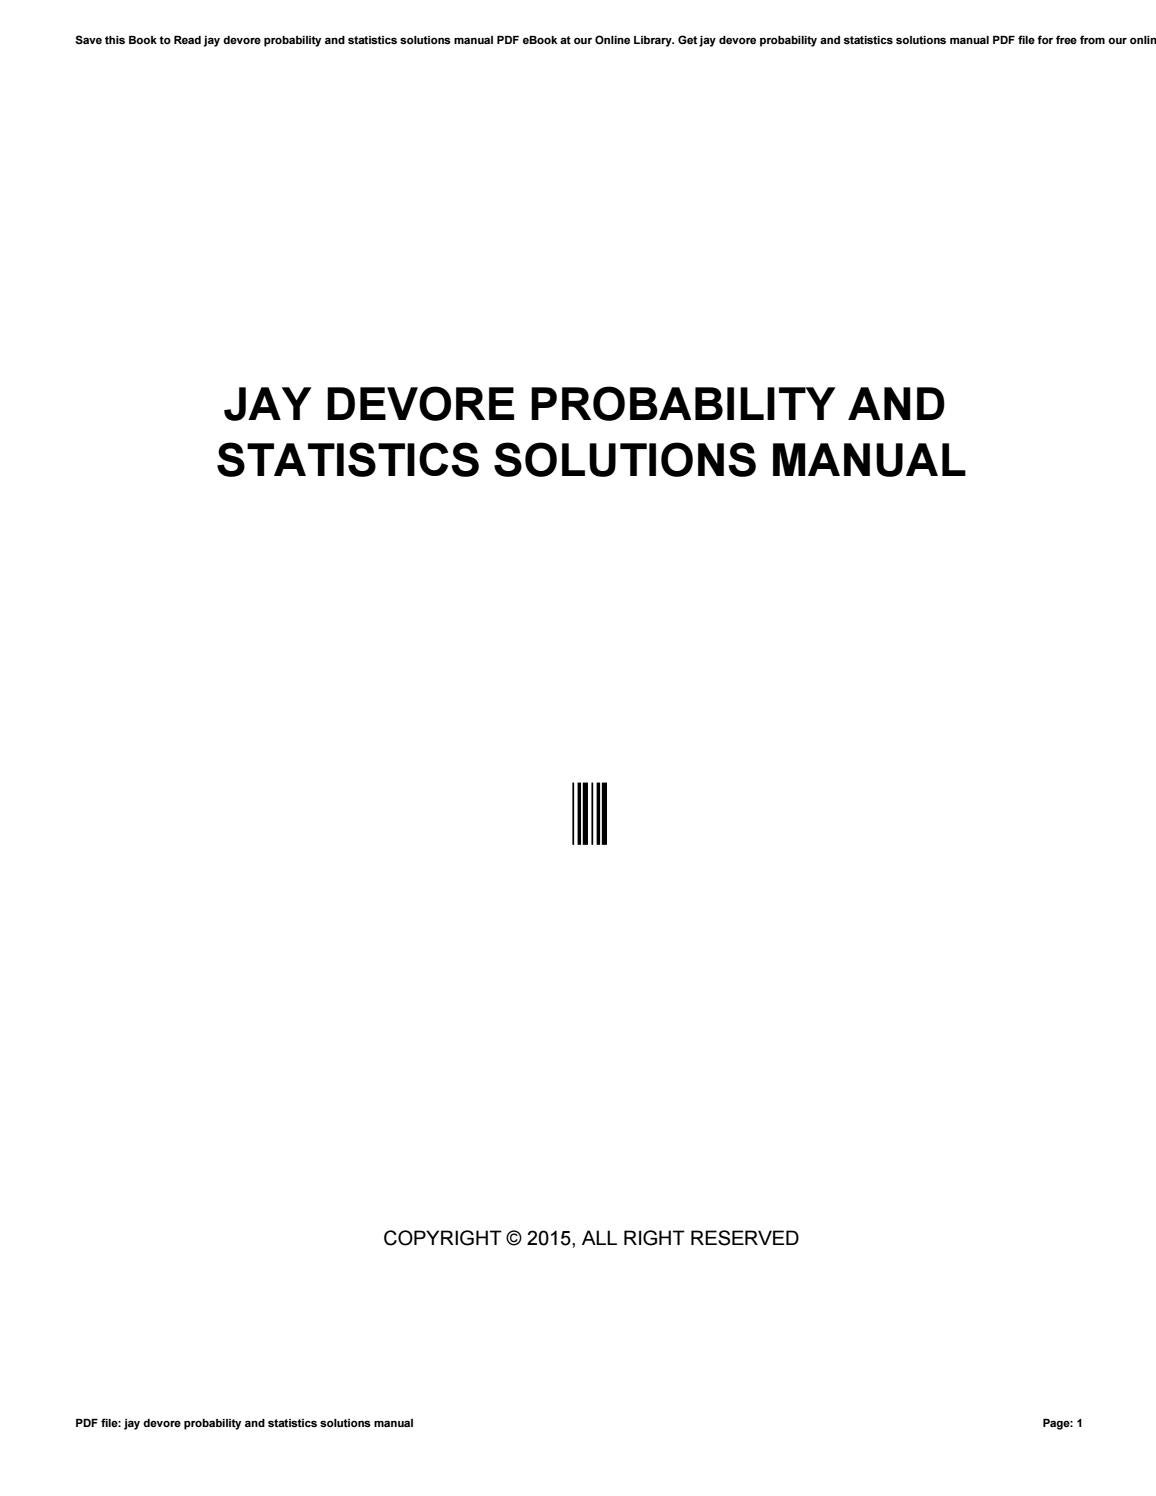 Jay devore probability and statistics solutions manual by nezzart197 - issuu